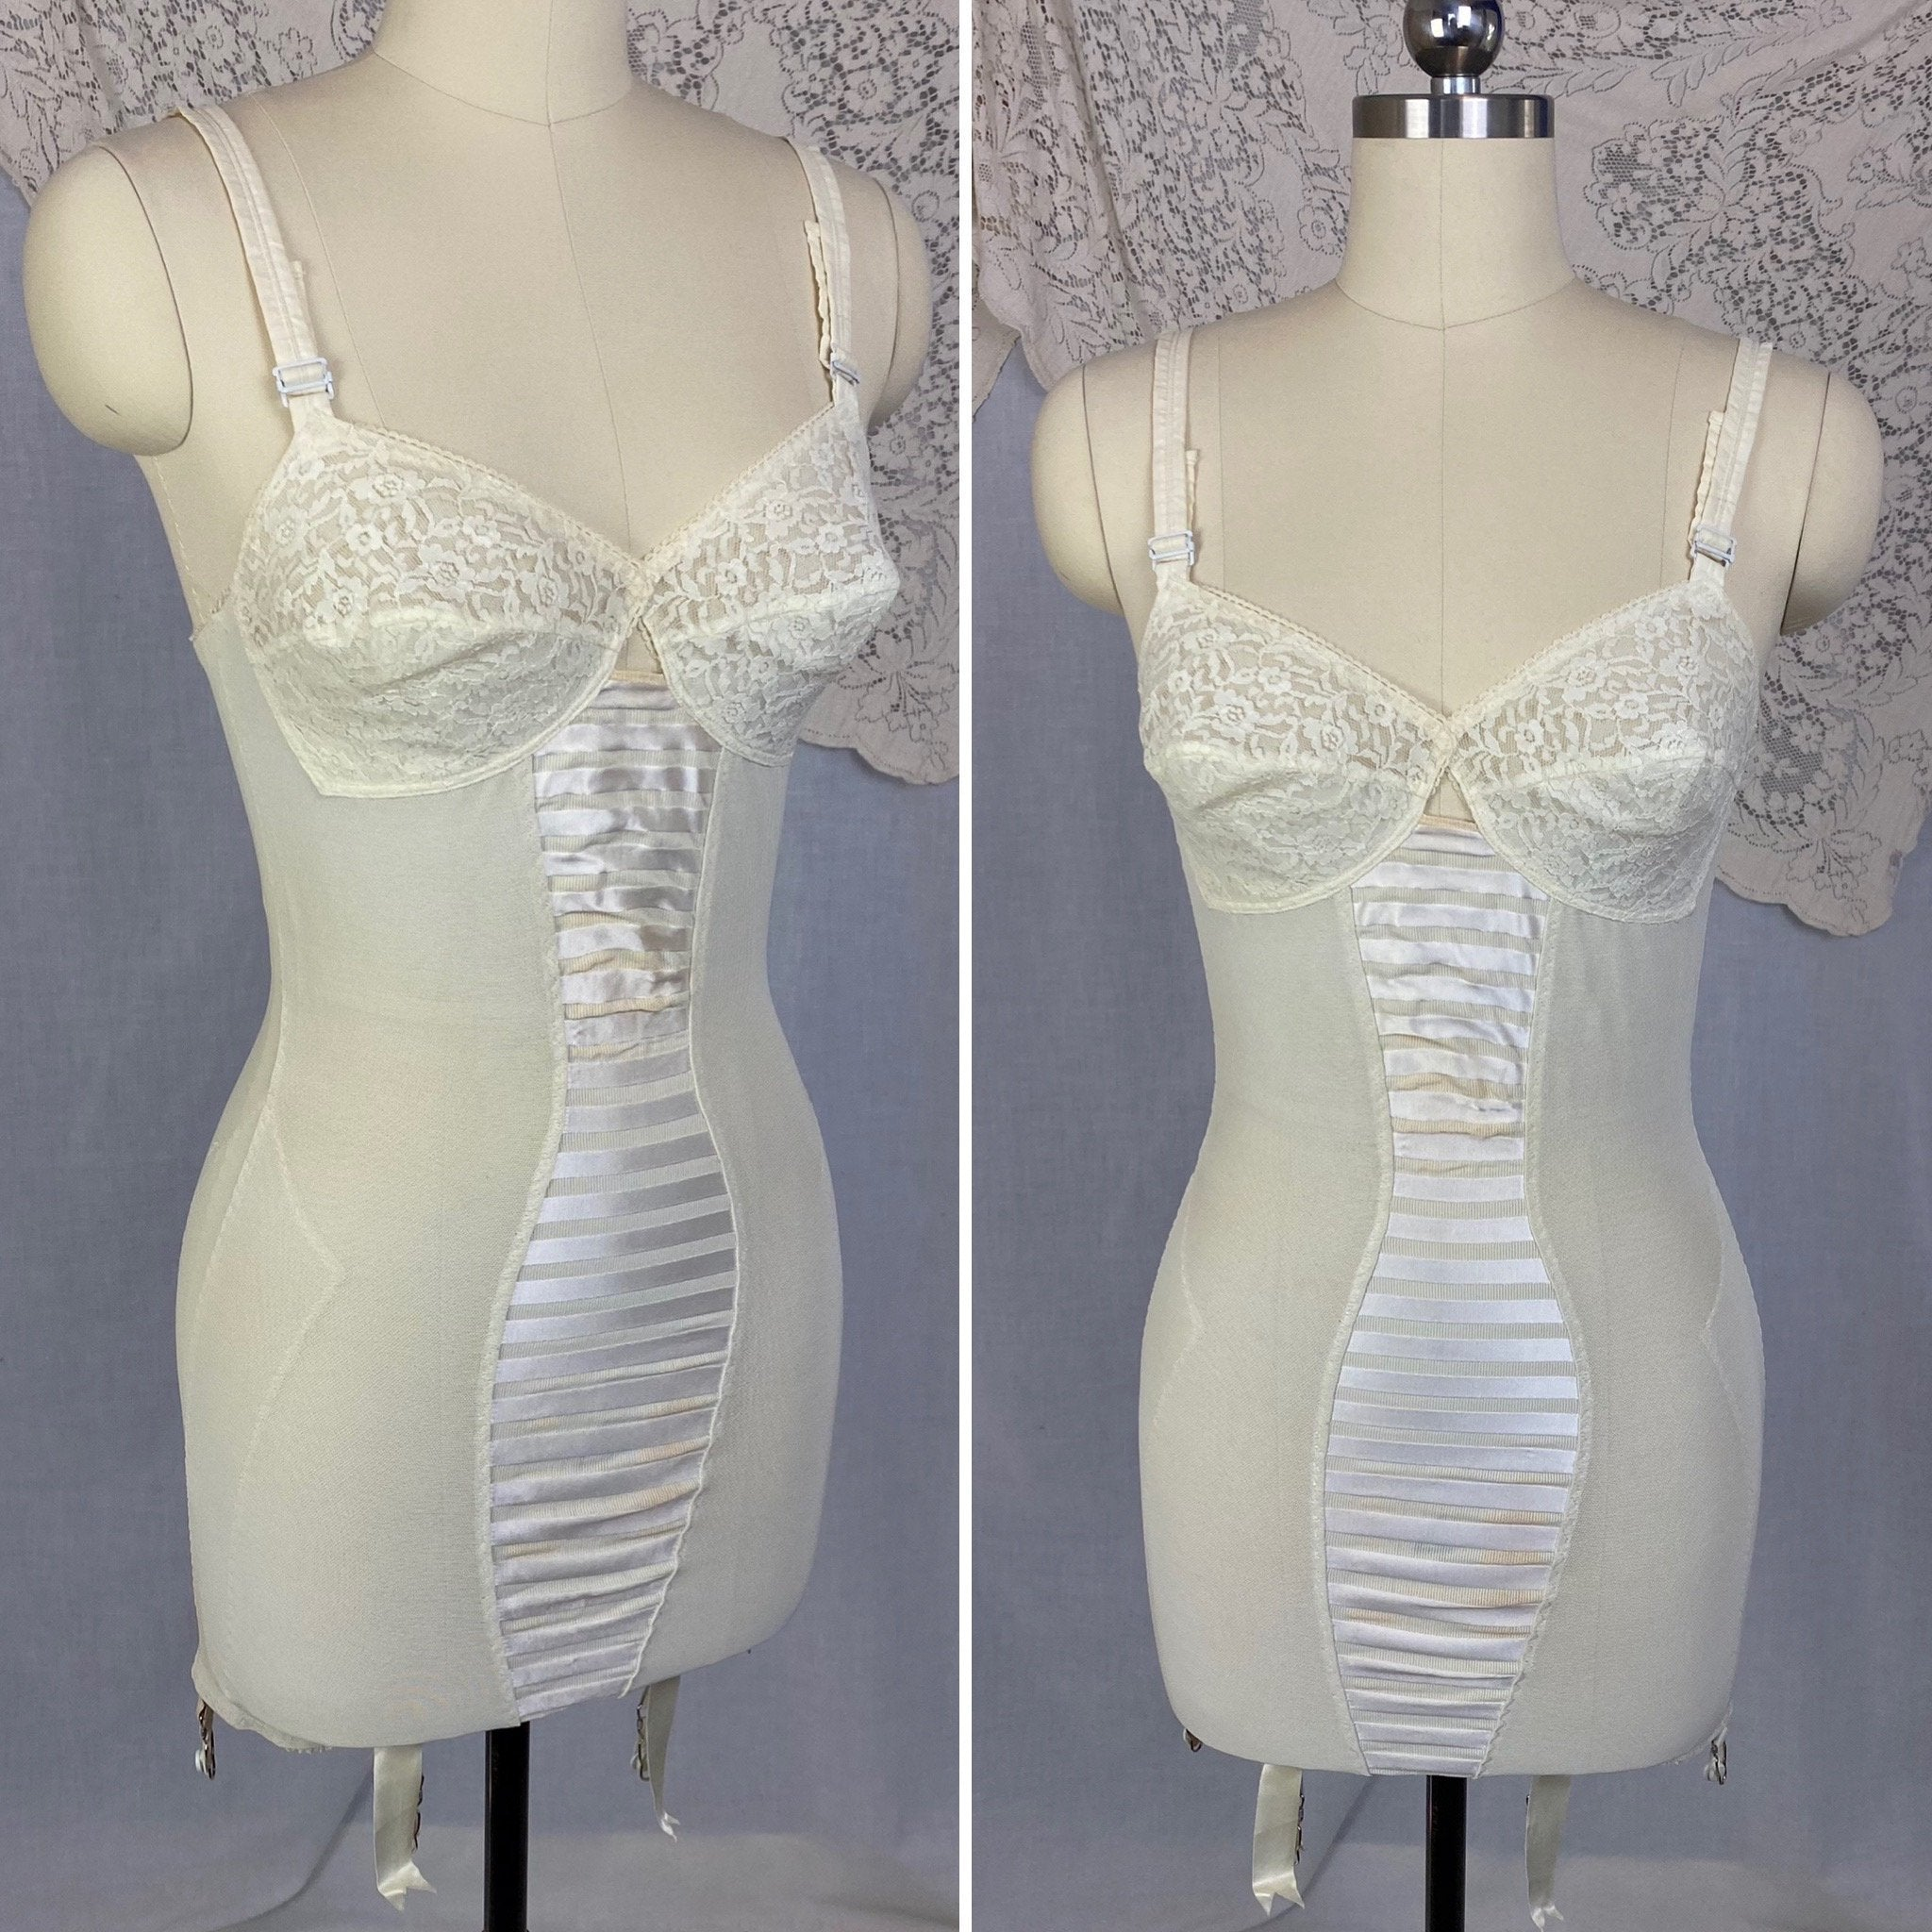 Vintage 1960's All in One Girdle | Creamy White Elastic Power Mesh & Lace with Rayon Satin Stripes | Size 34-36, S | Fashion Hour by Blair - Daggers & Dames